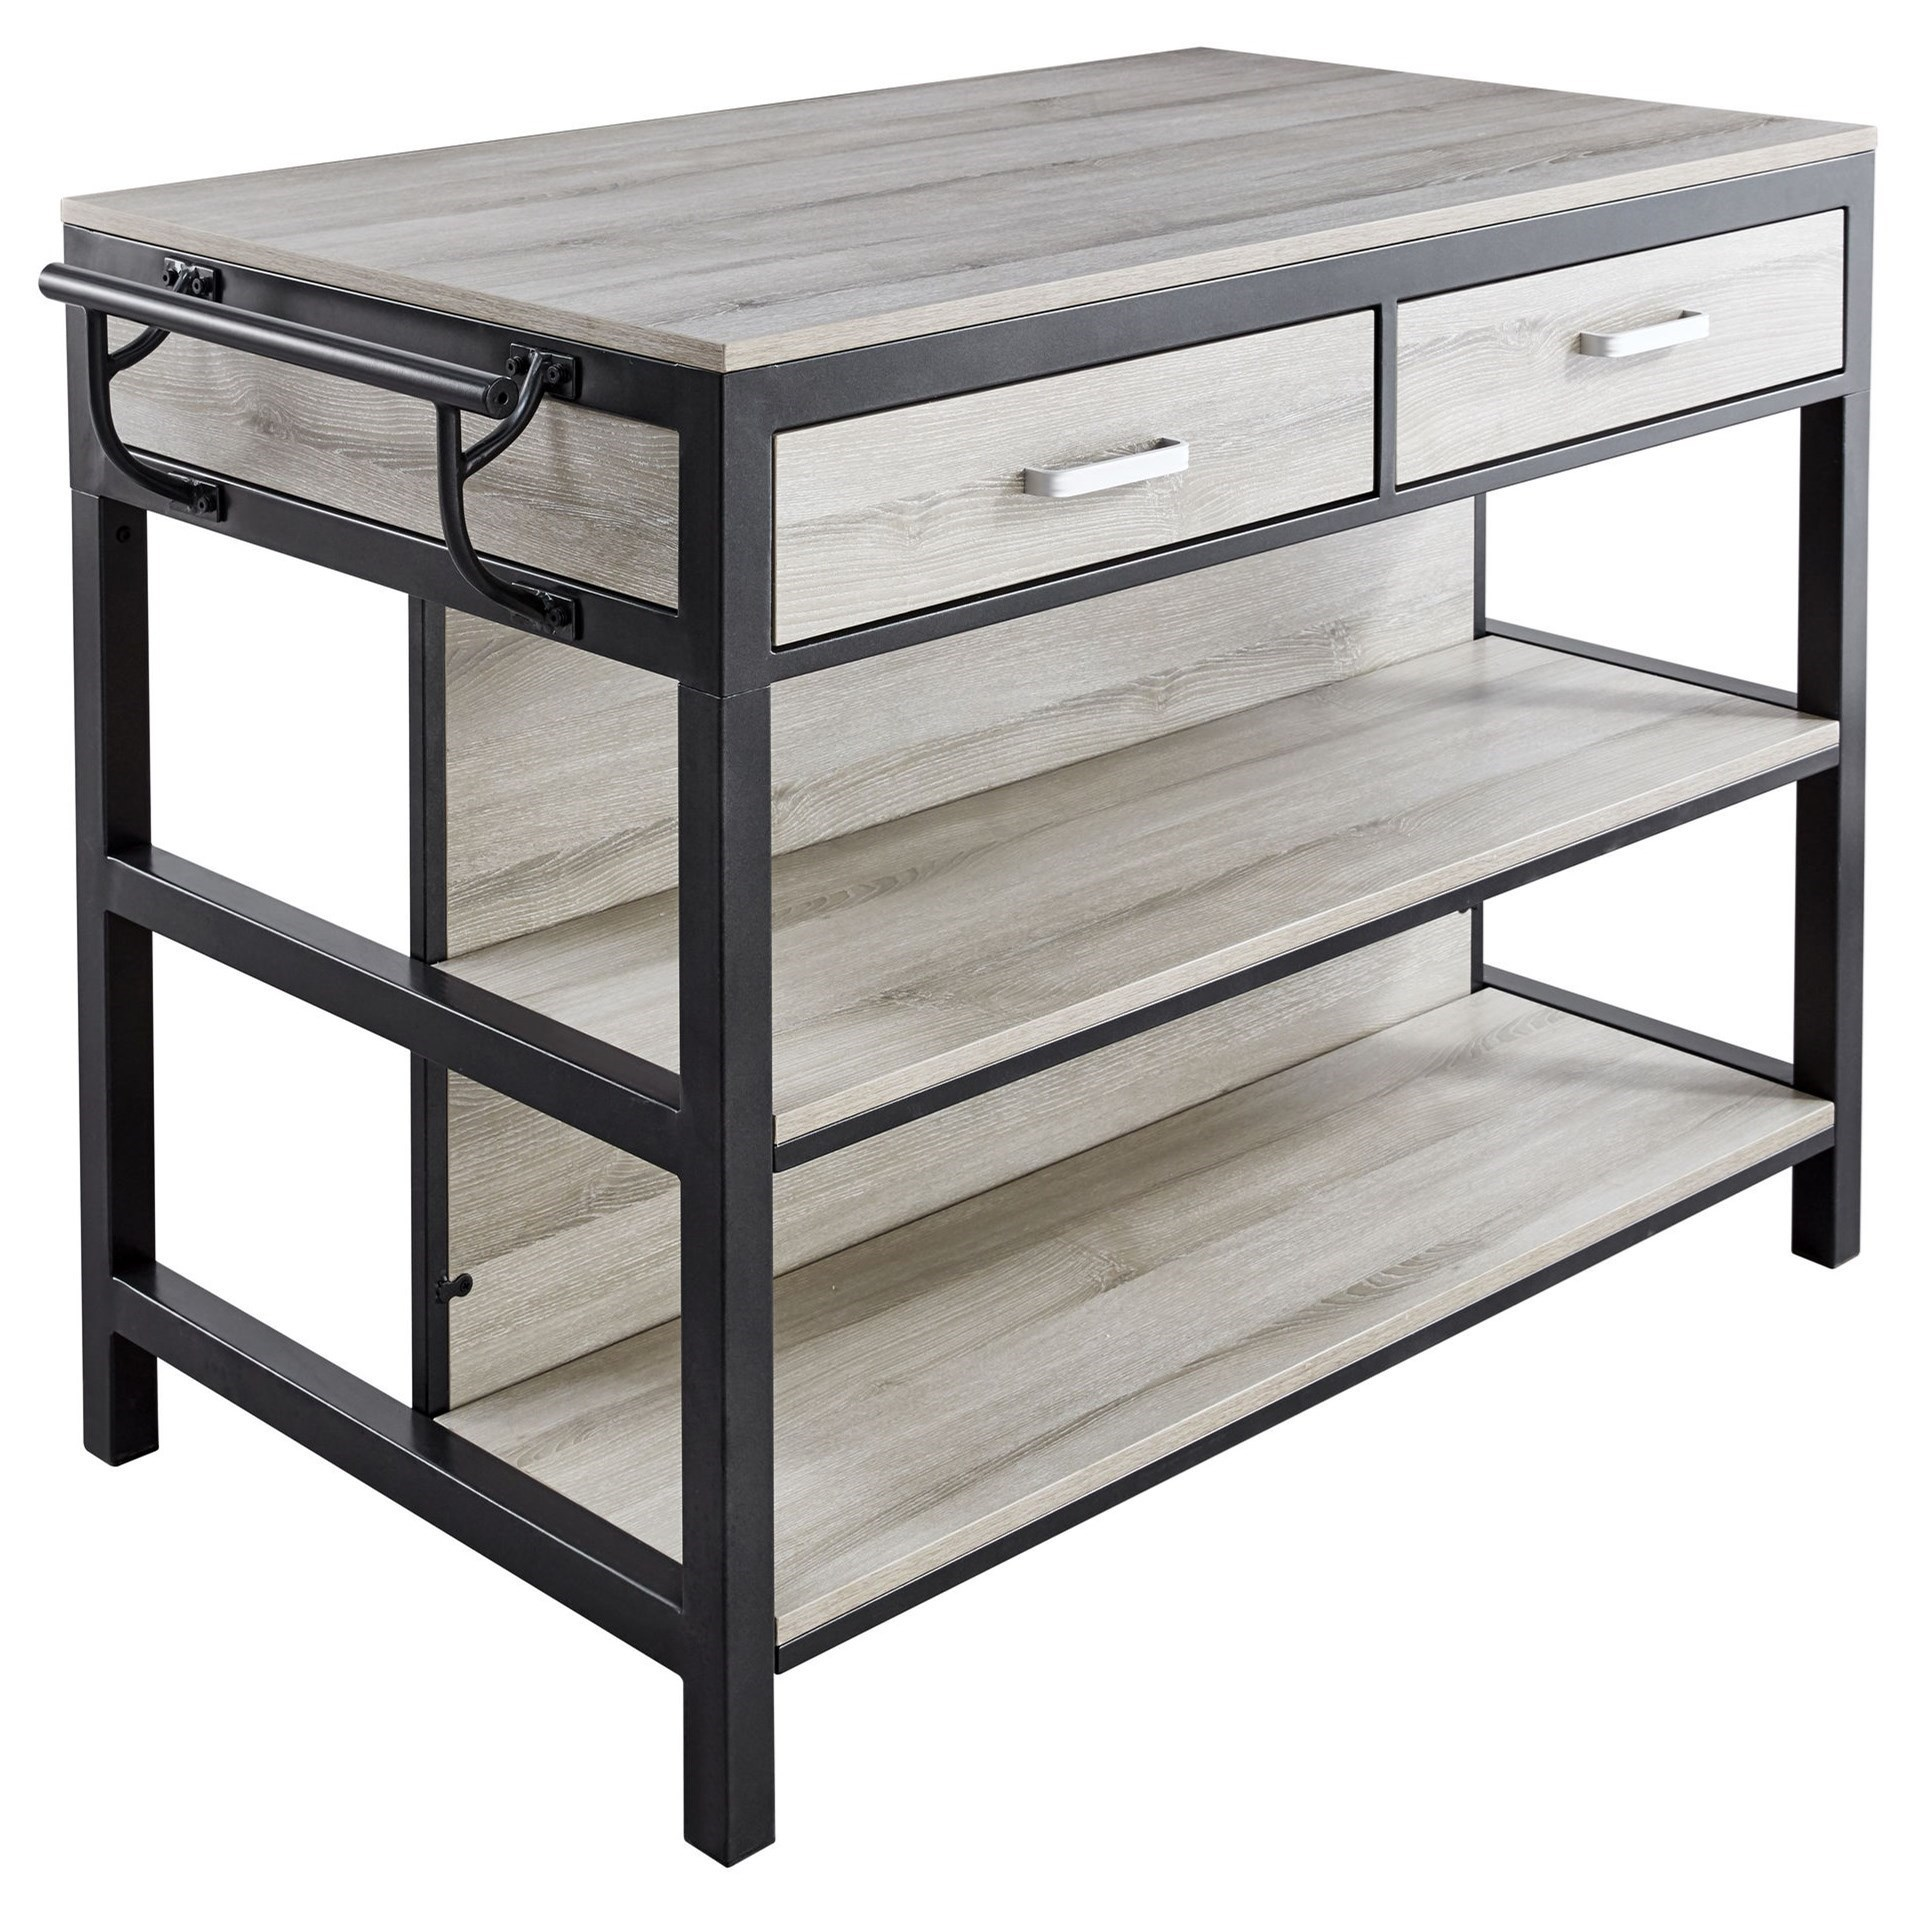 Carson Counter Height Kitchen Table by Steve Silver at Northeast Factory Direct